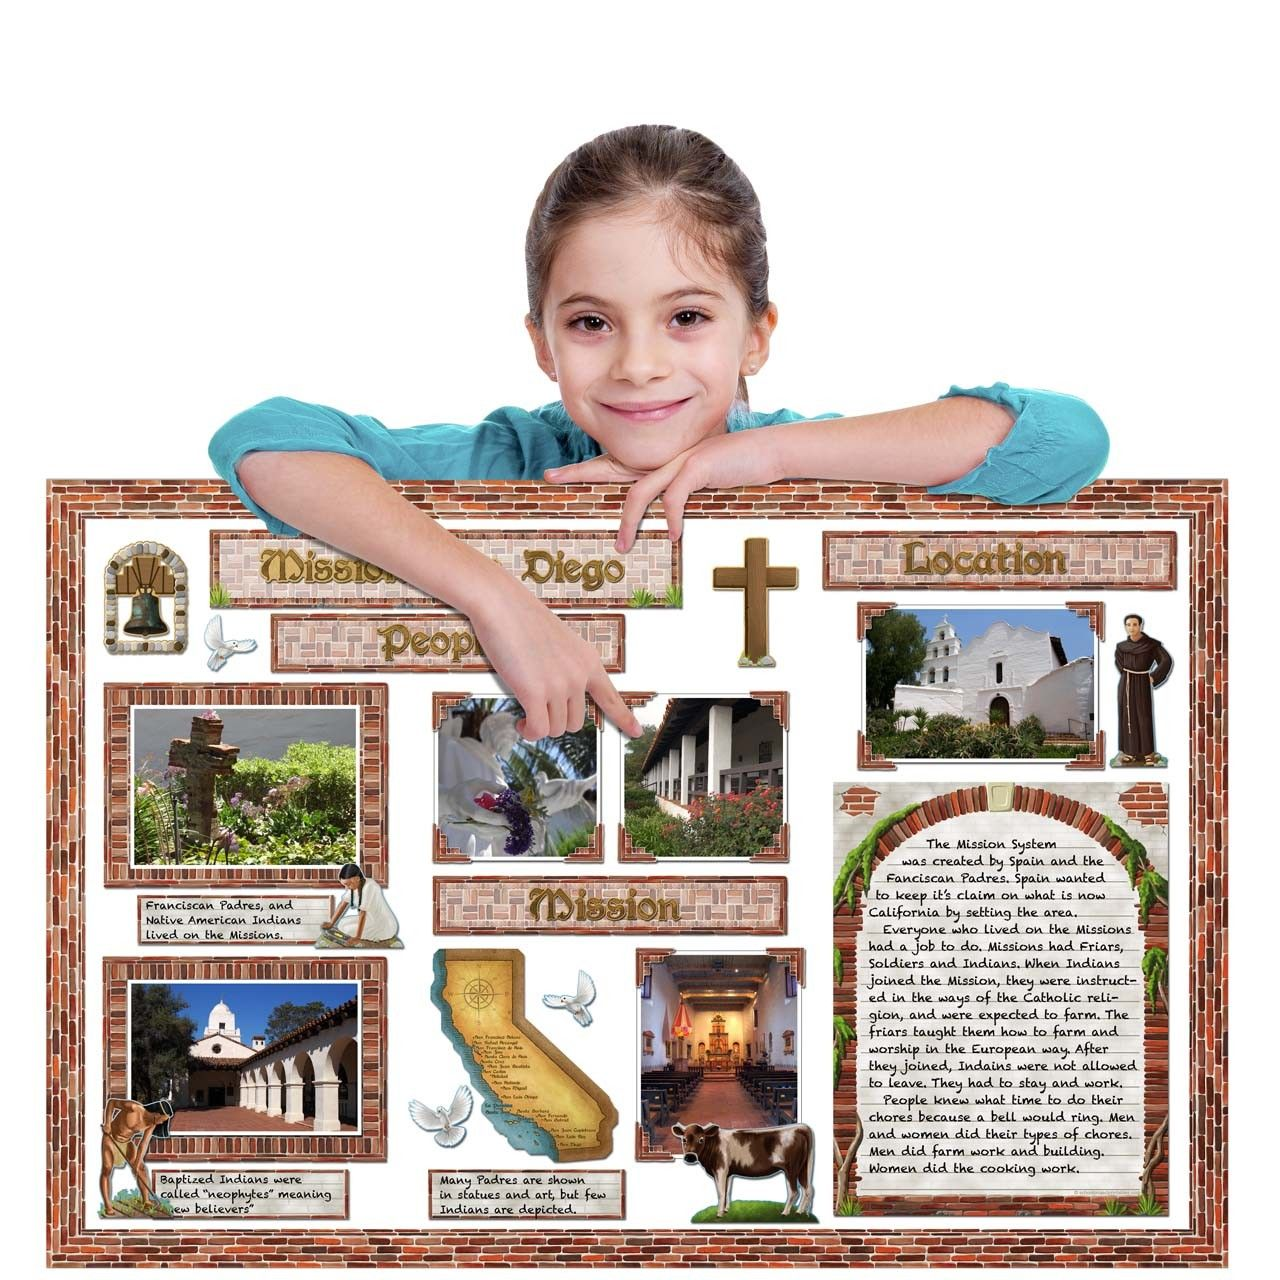 California missions design your california missions school project poster using these